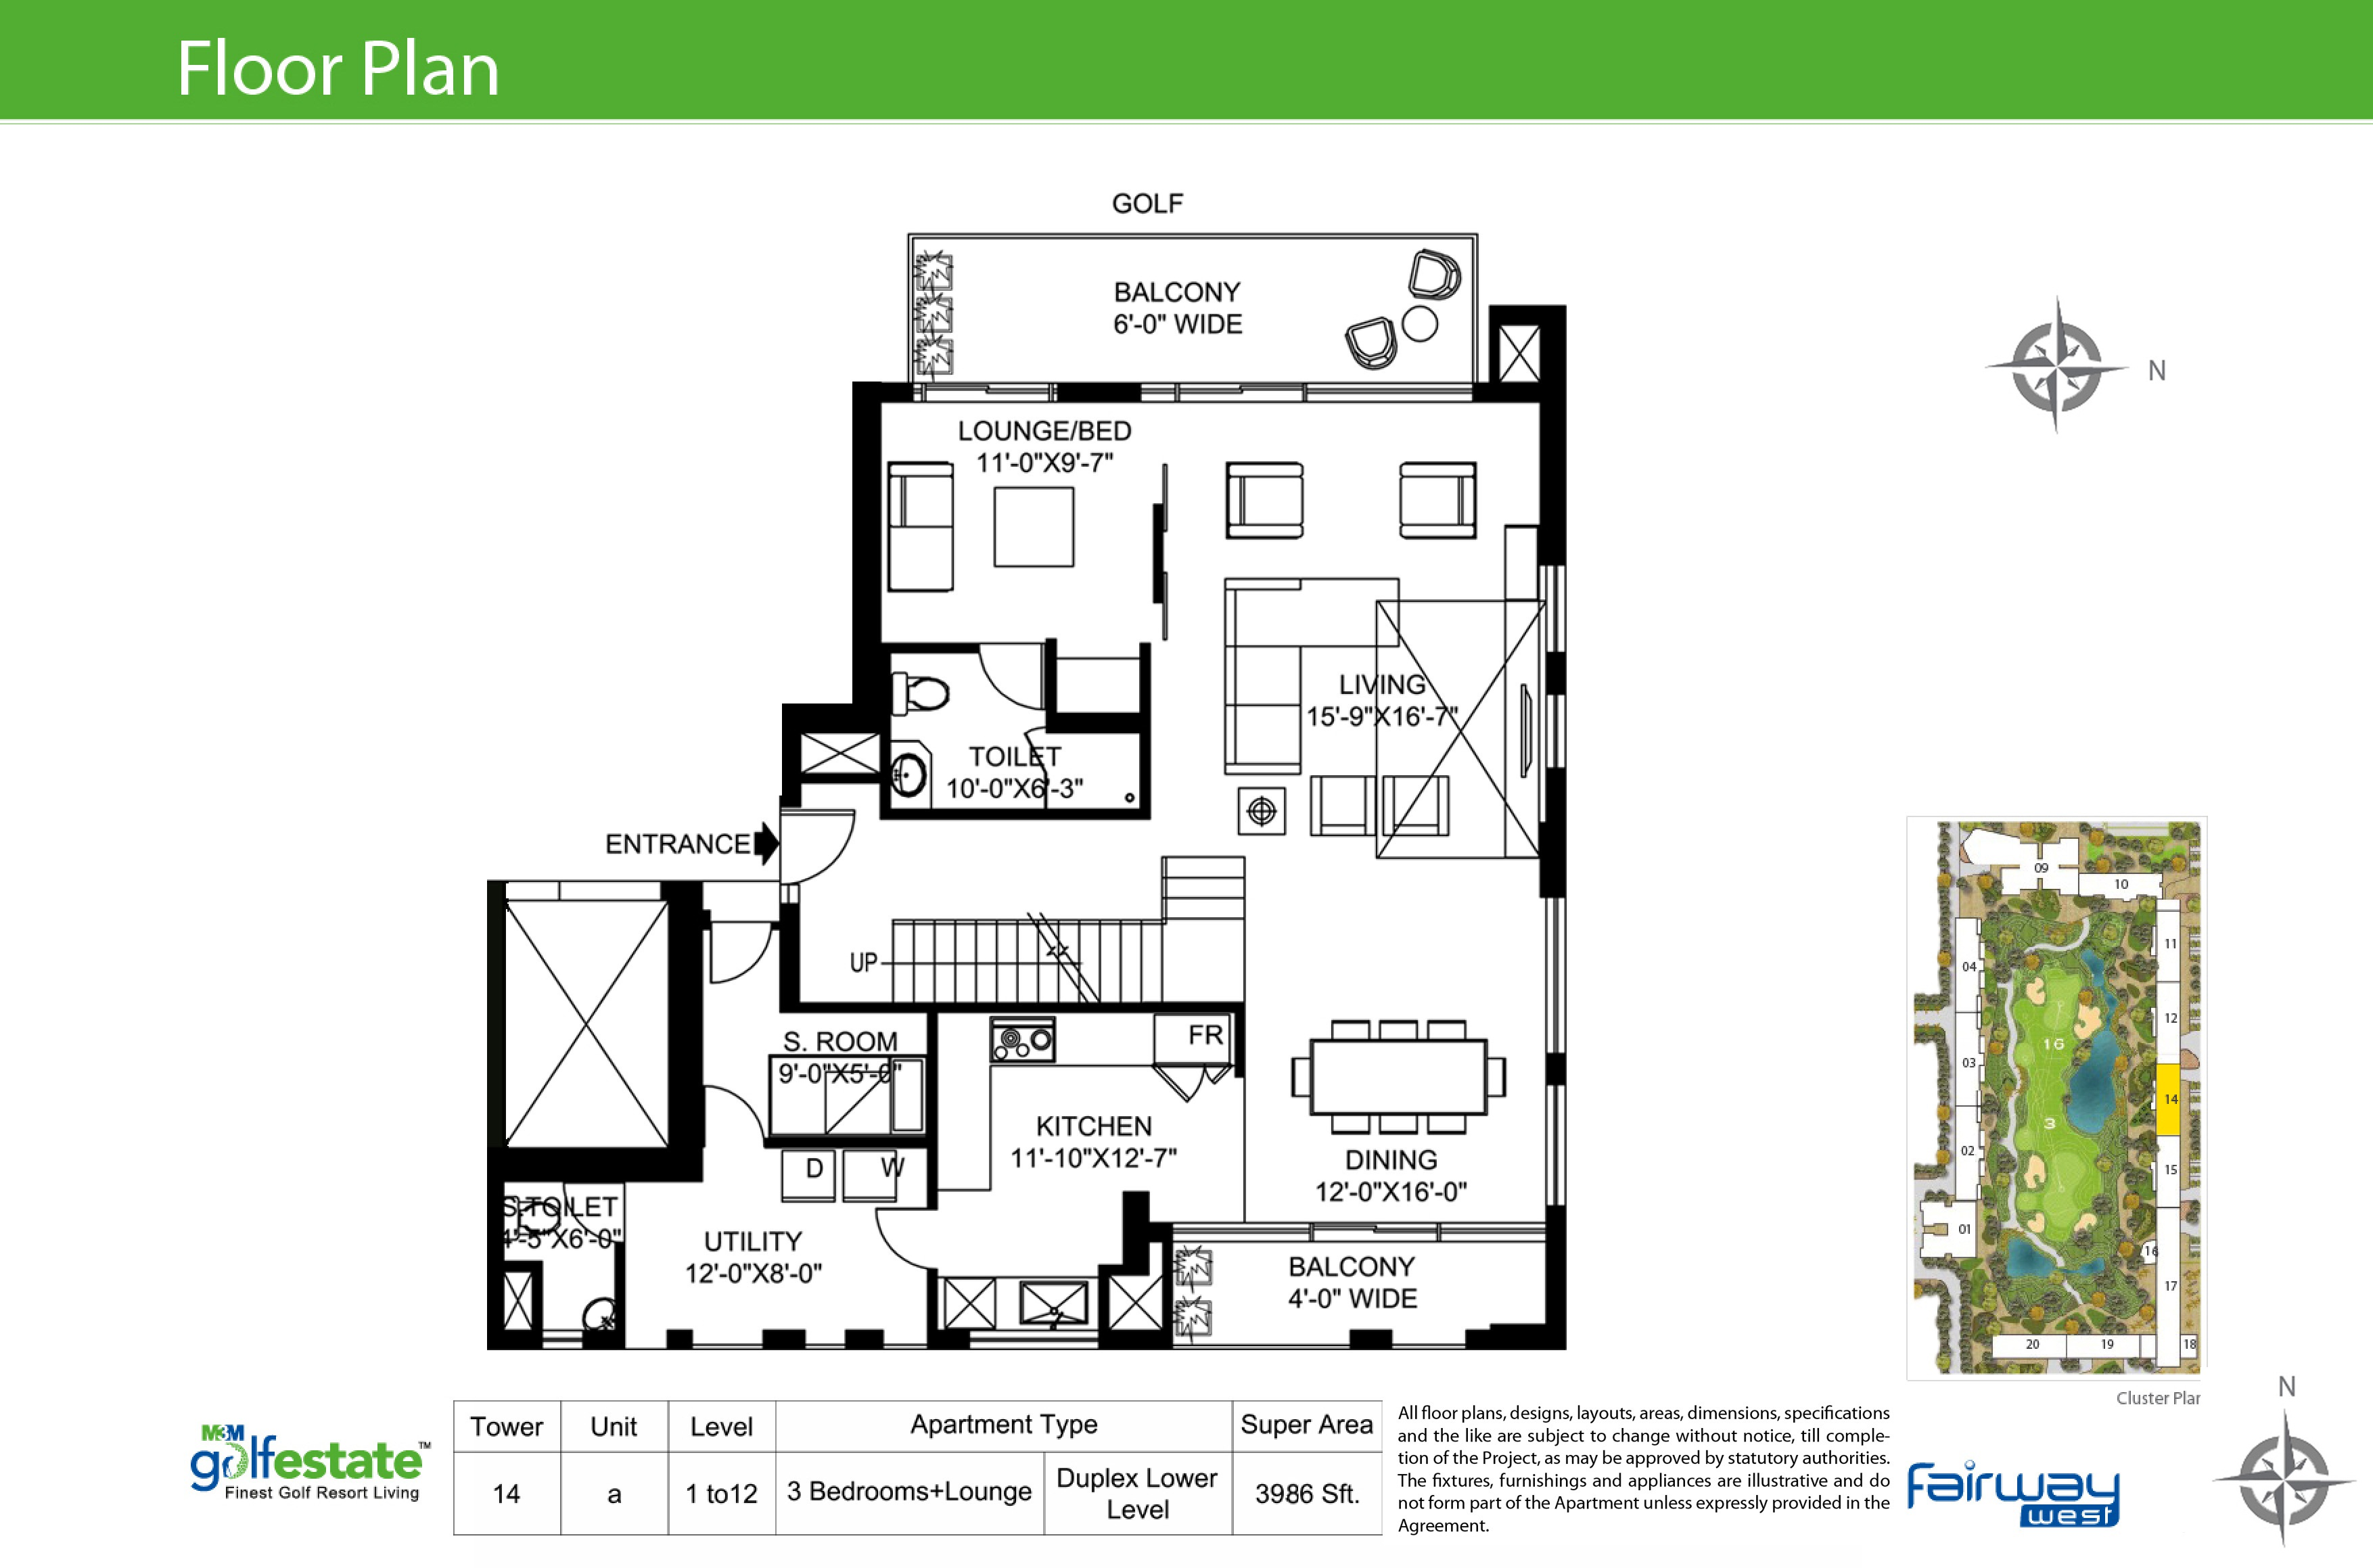 Floor plan of M3M Golf estate Fairway West 3986 Sqft